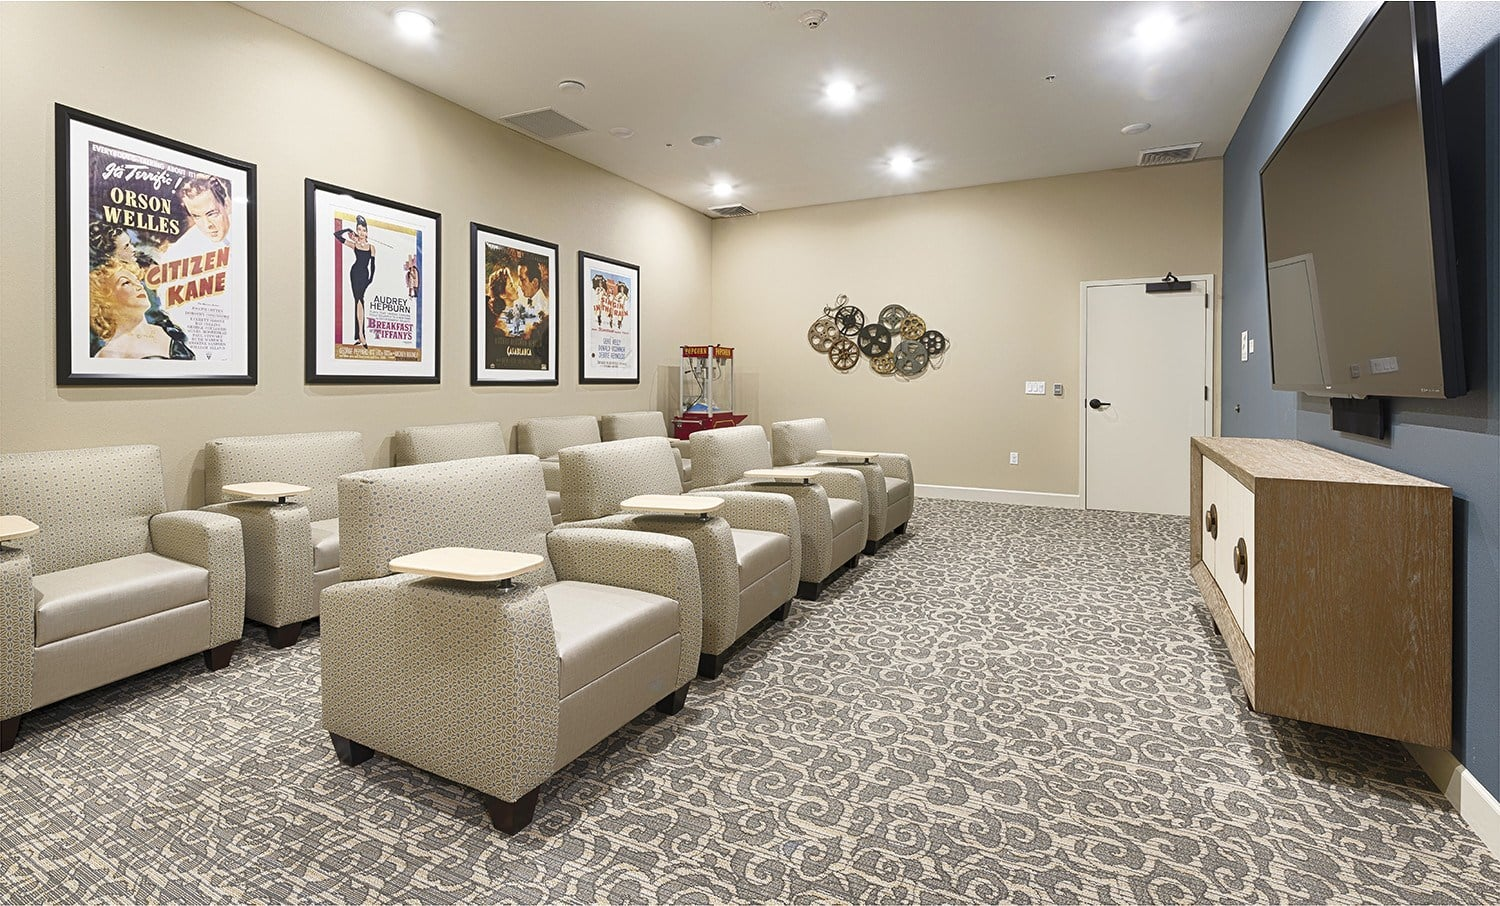 Entertain yourself and watch a movie at Kingston Bay Senior Living.